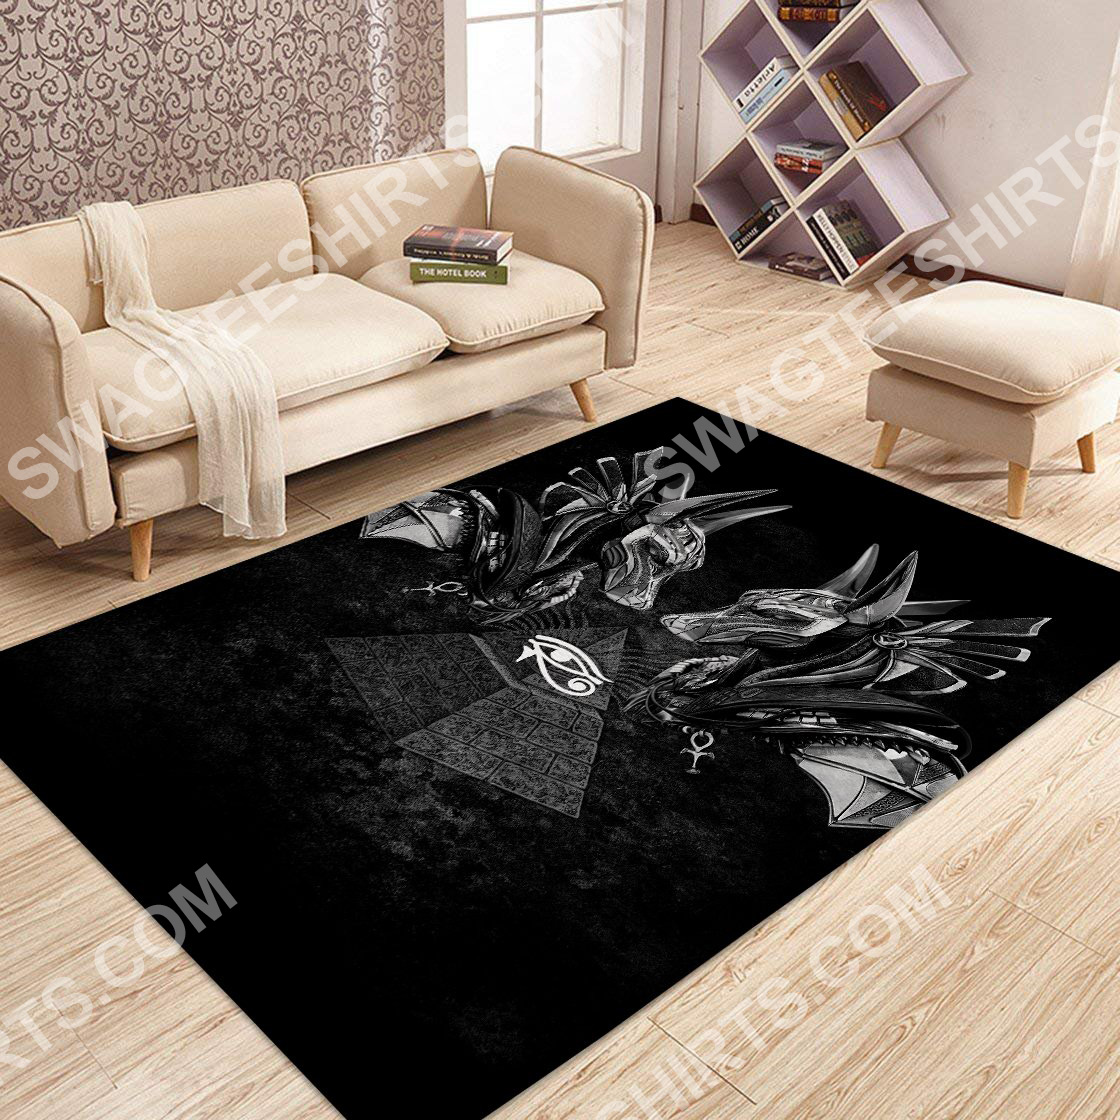 anubis god of the dead all over printed rug 3(1)